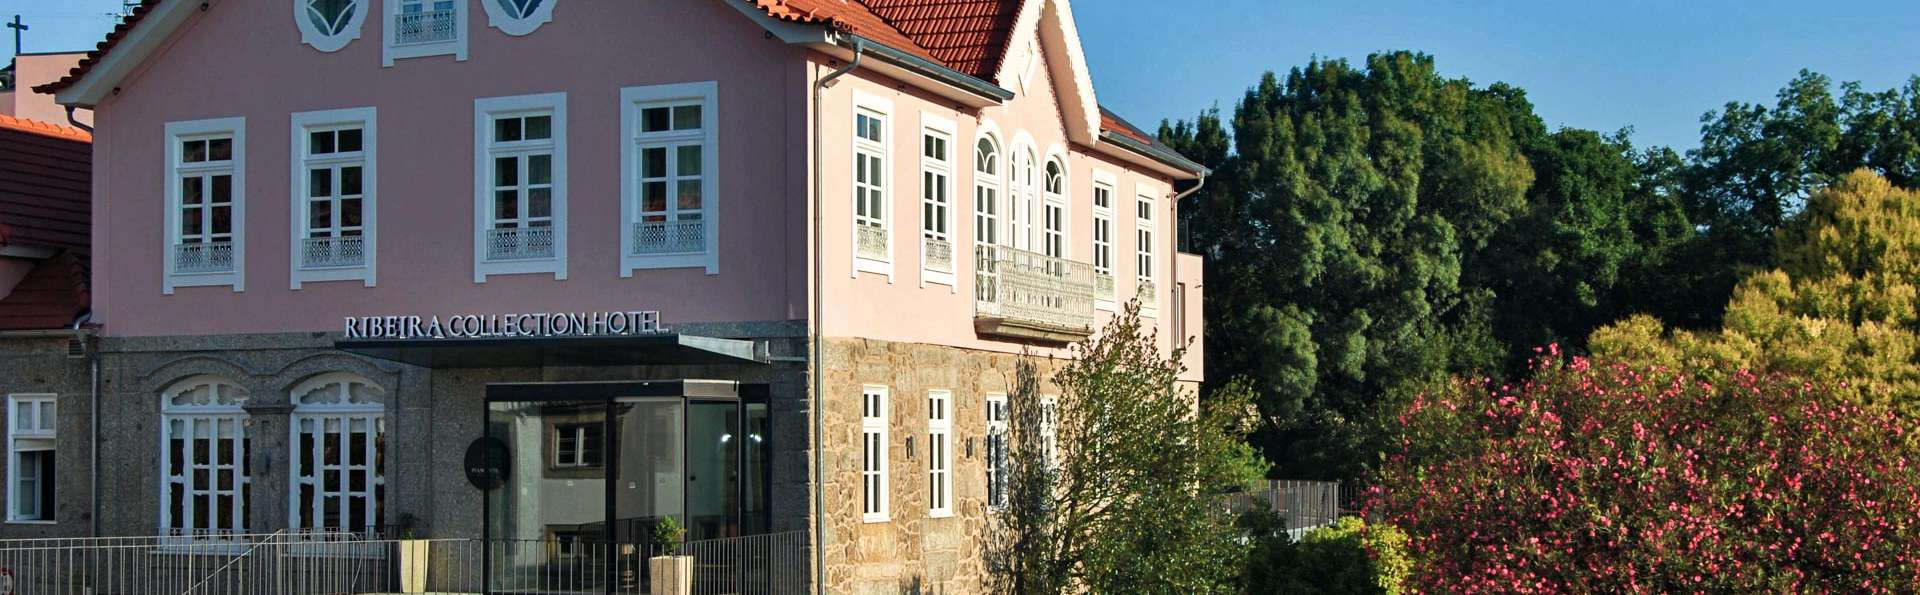 Ribeira Collection Hotel - EDIT_FRONT_01.jpg